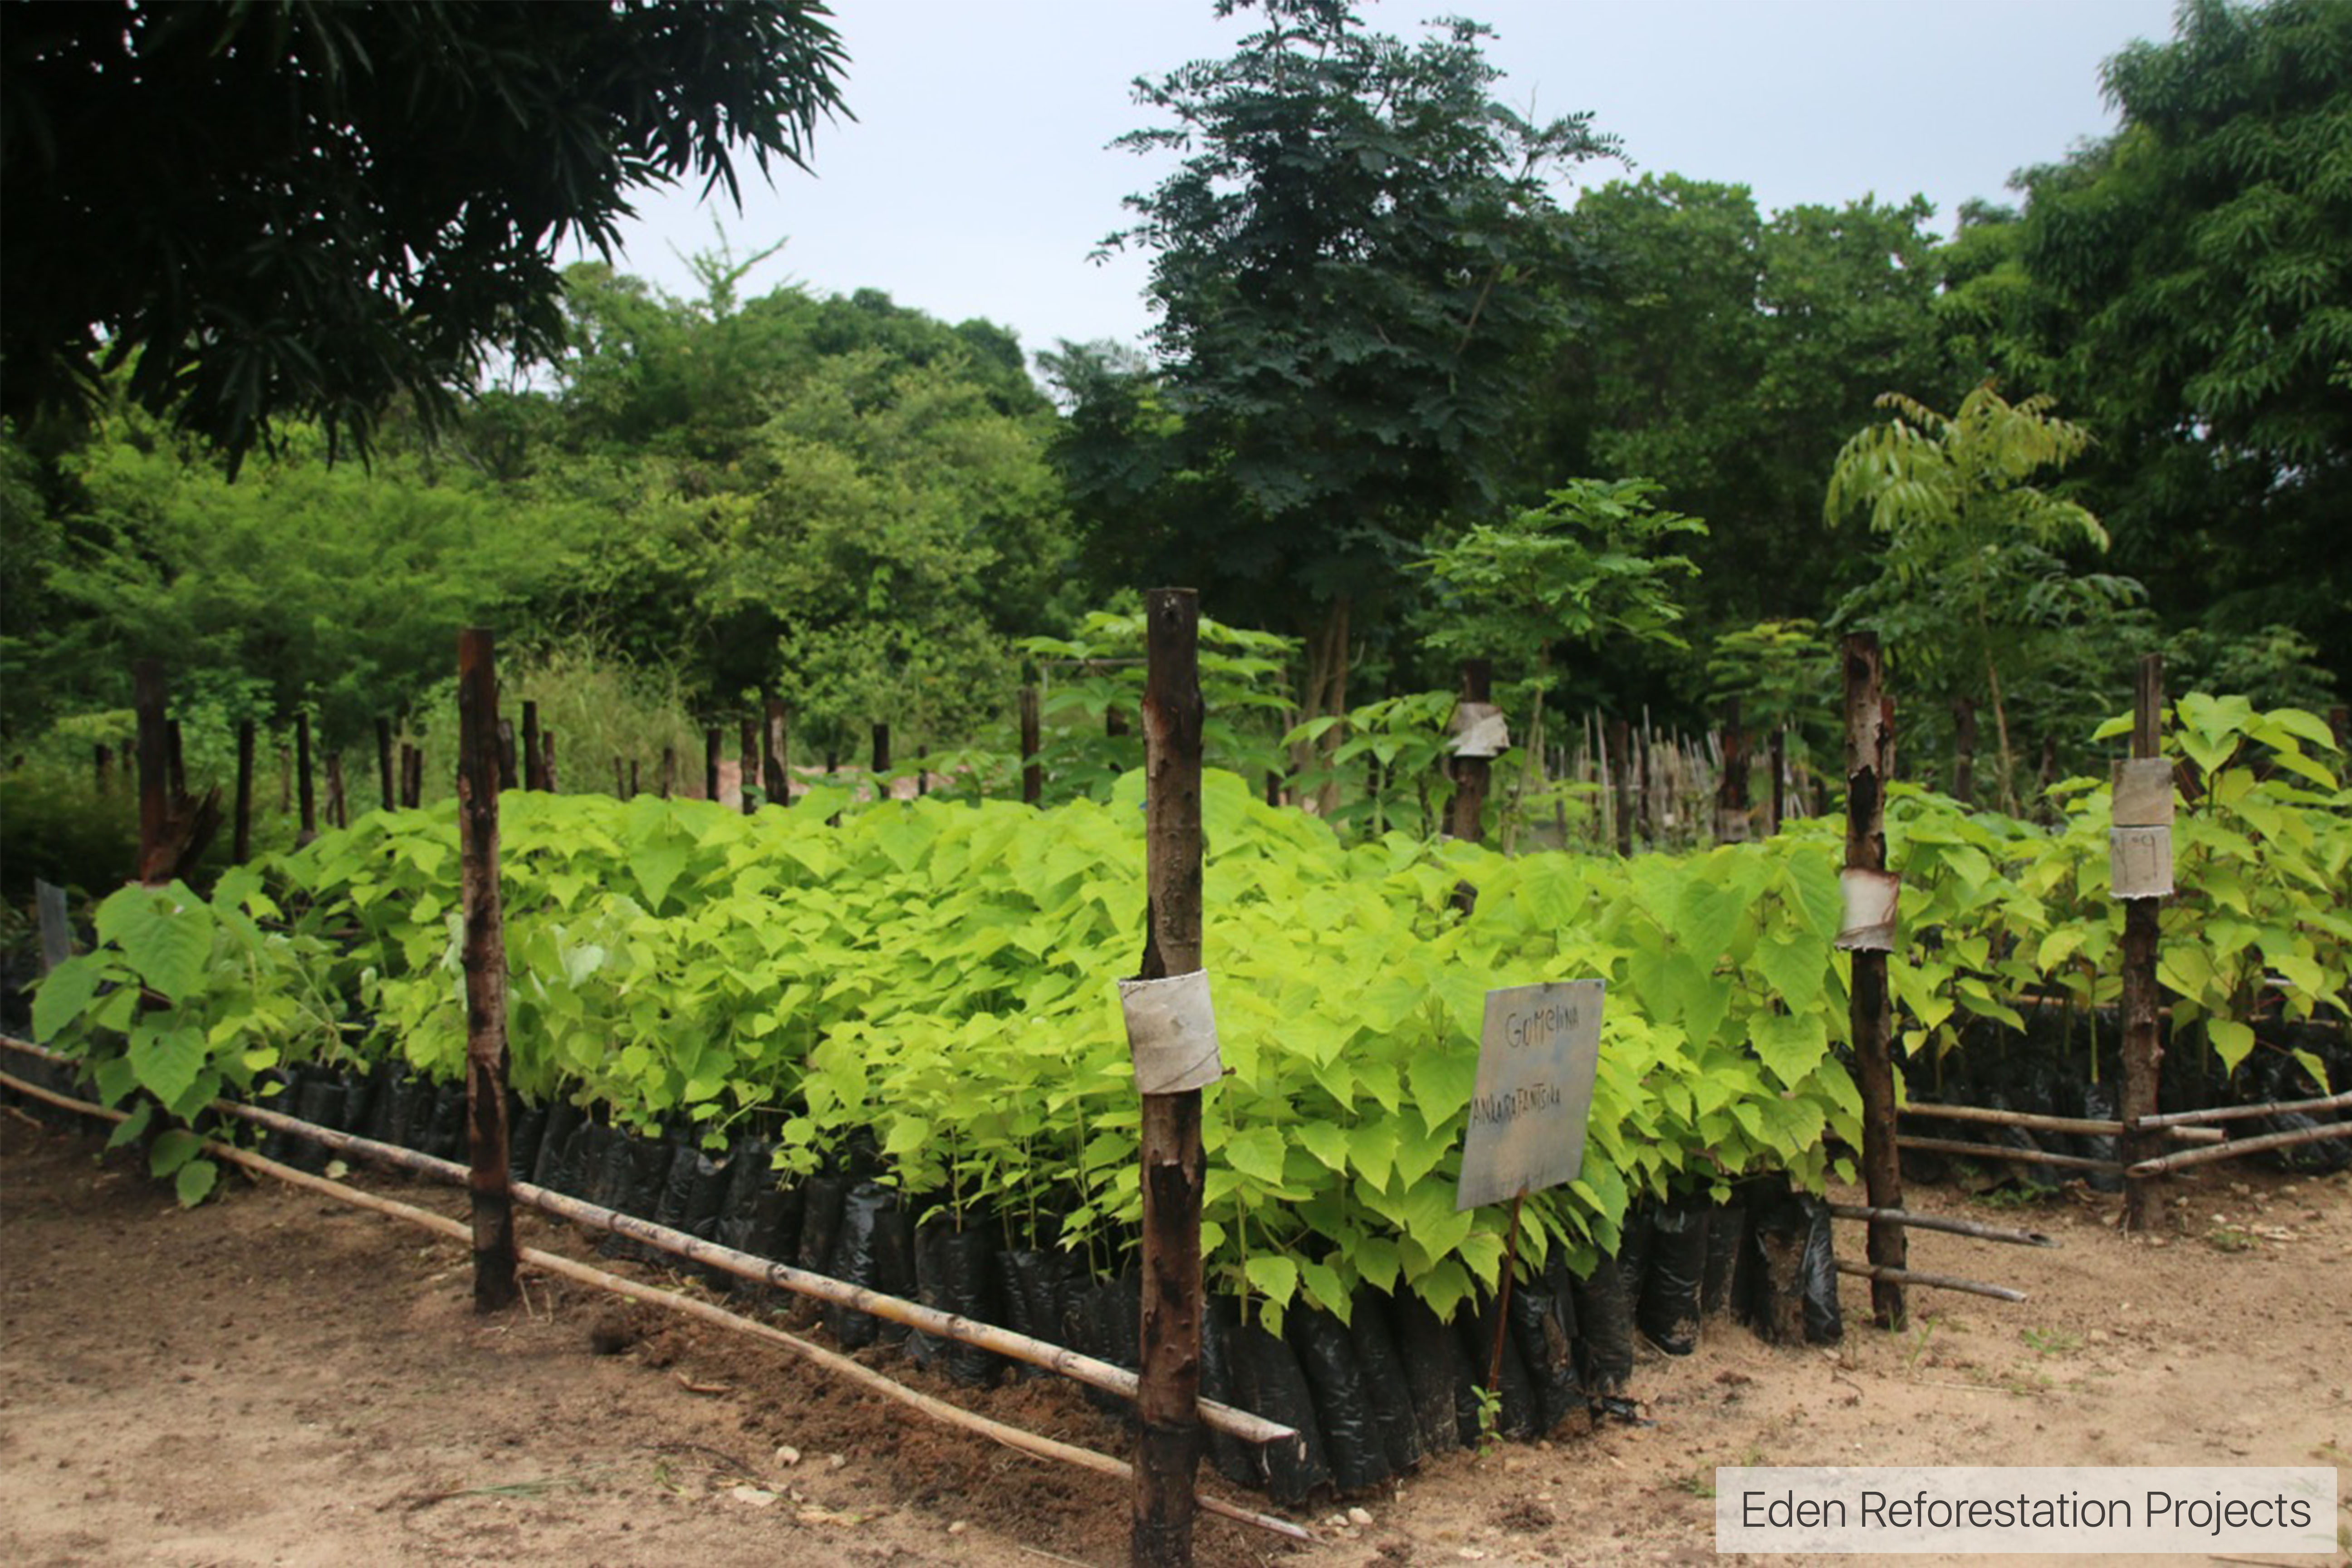 ecosia_eden-reforestation-projects-madagascar-1